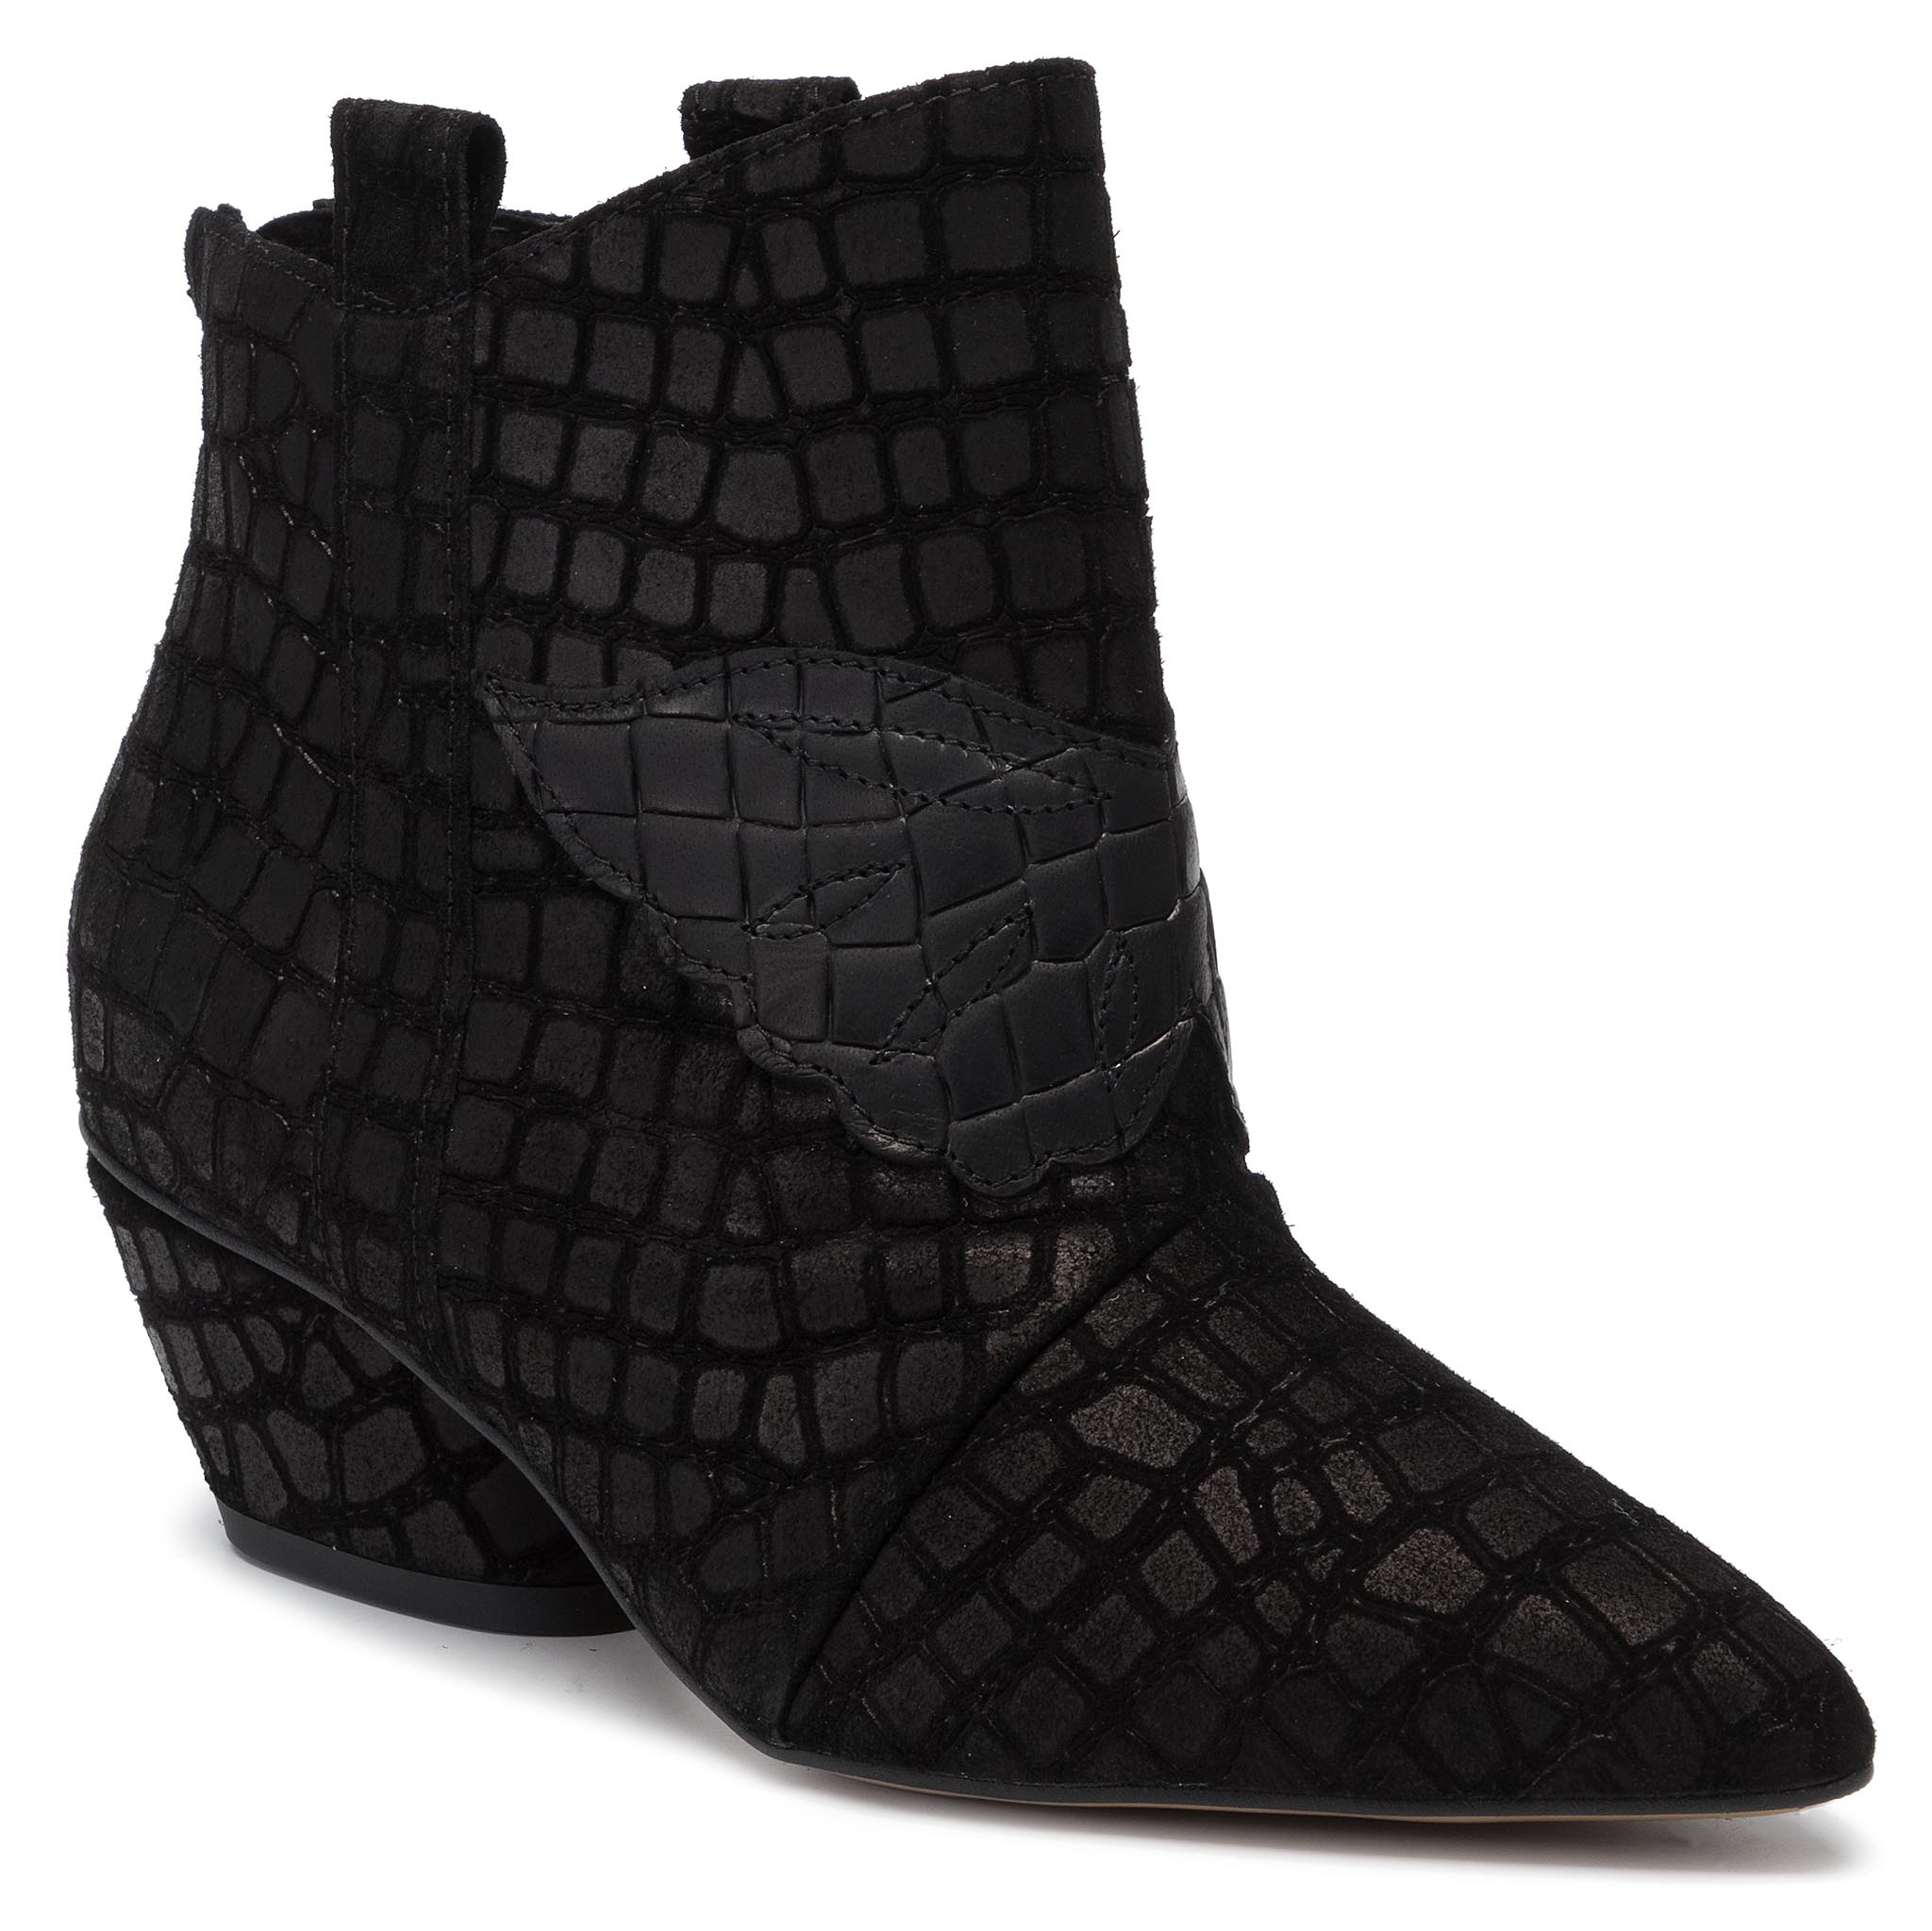 Botine L37 - Feel My Needs Sw20ss46 Black imagine epantofi.ro